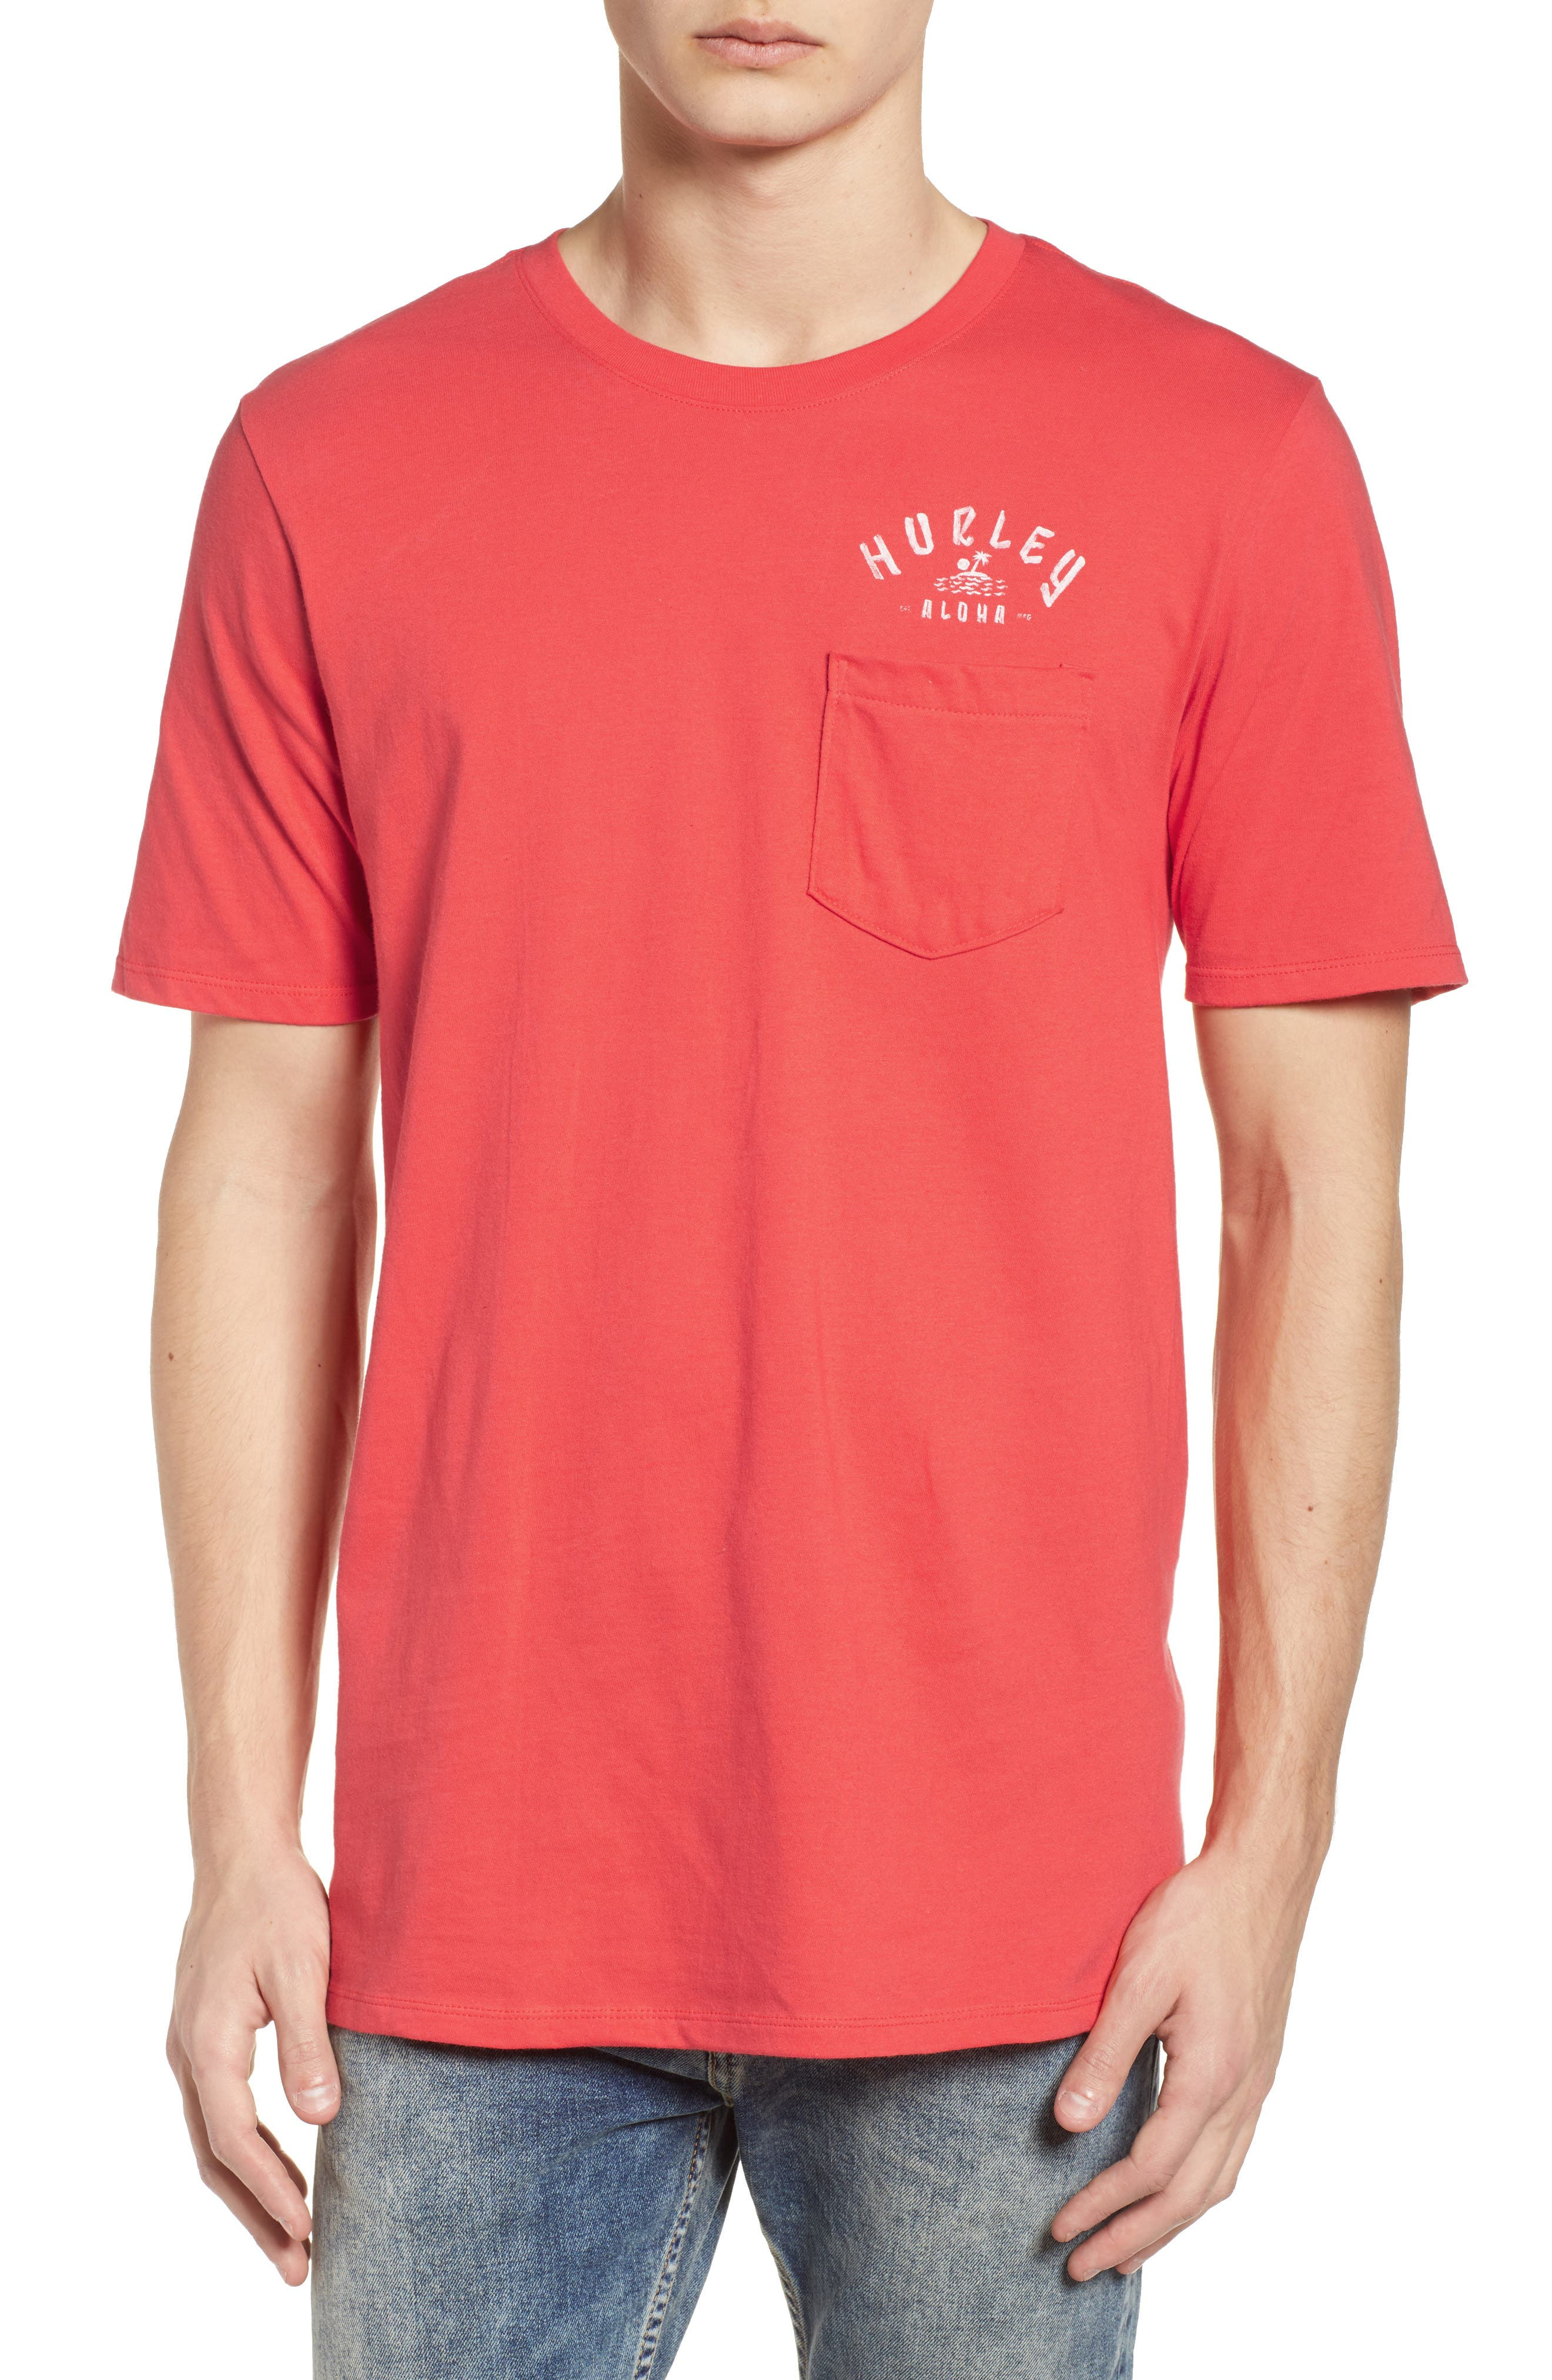 Plate Lunch Pocket T-Shirt,                         Main,                         color, 602